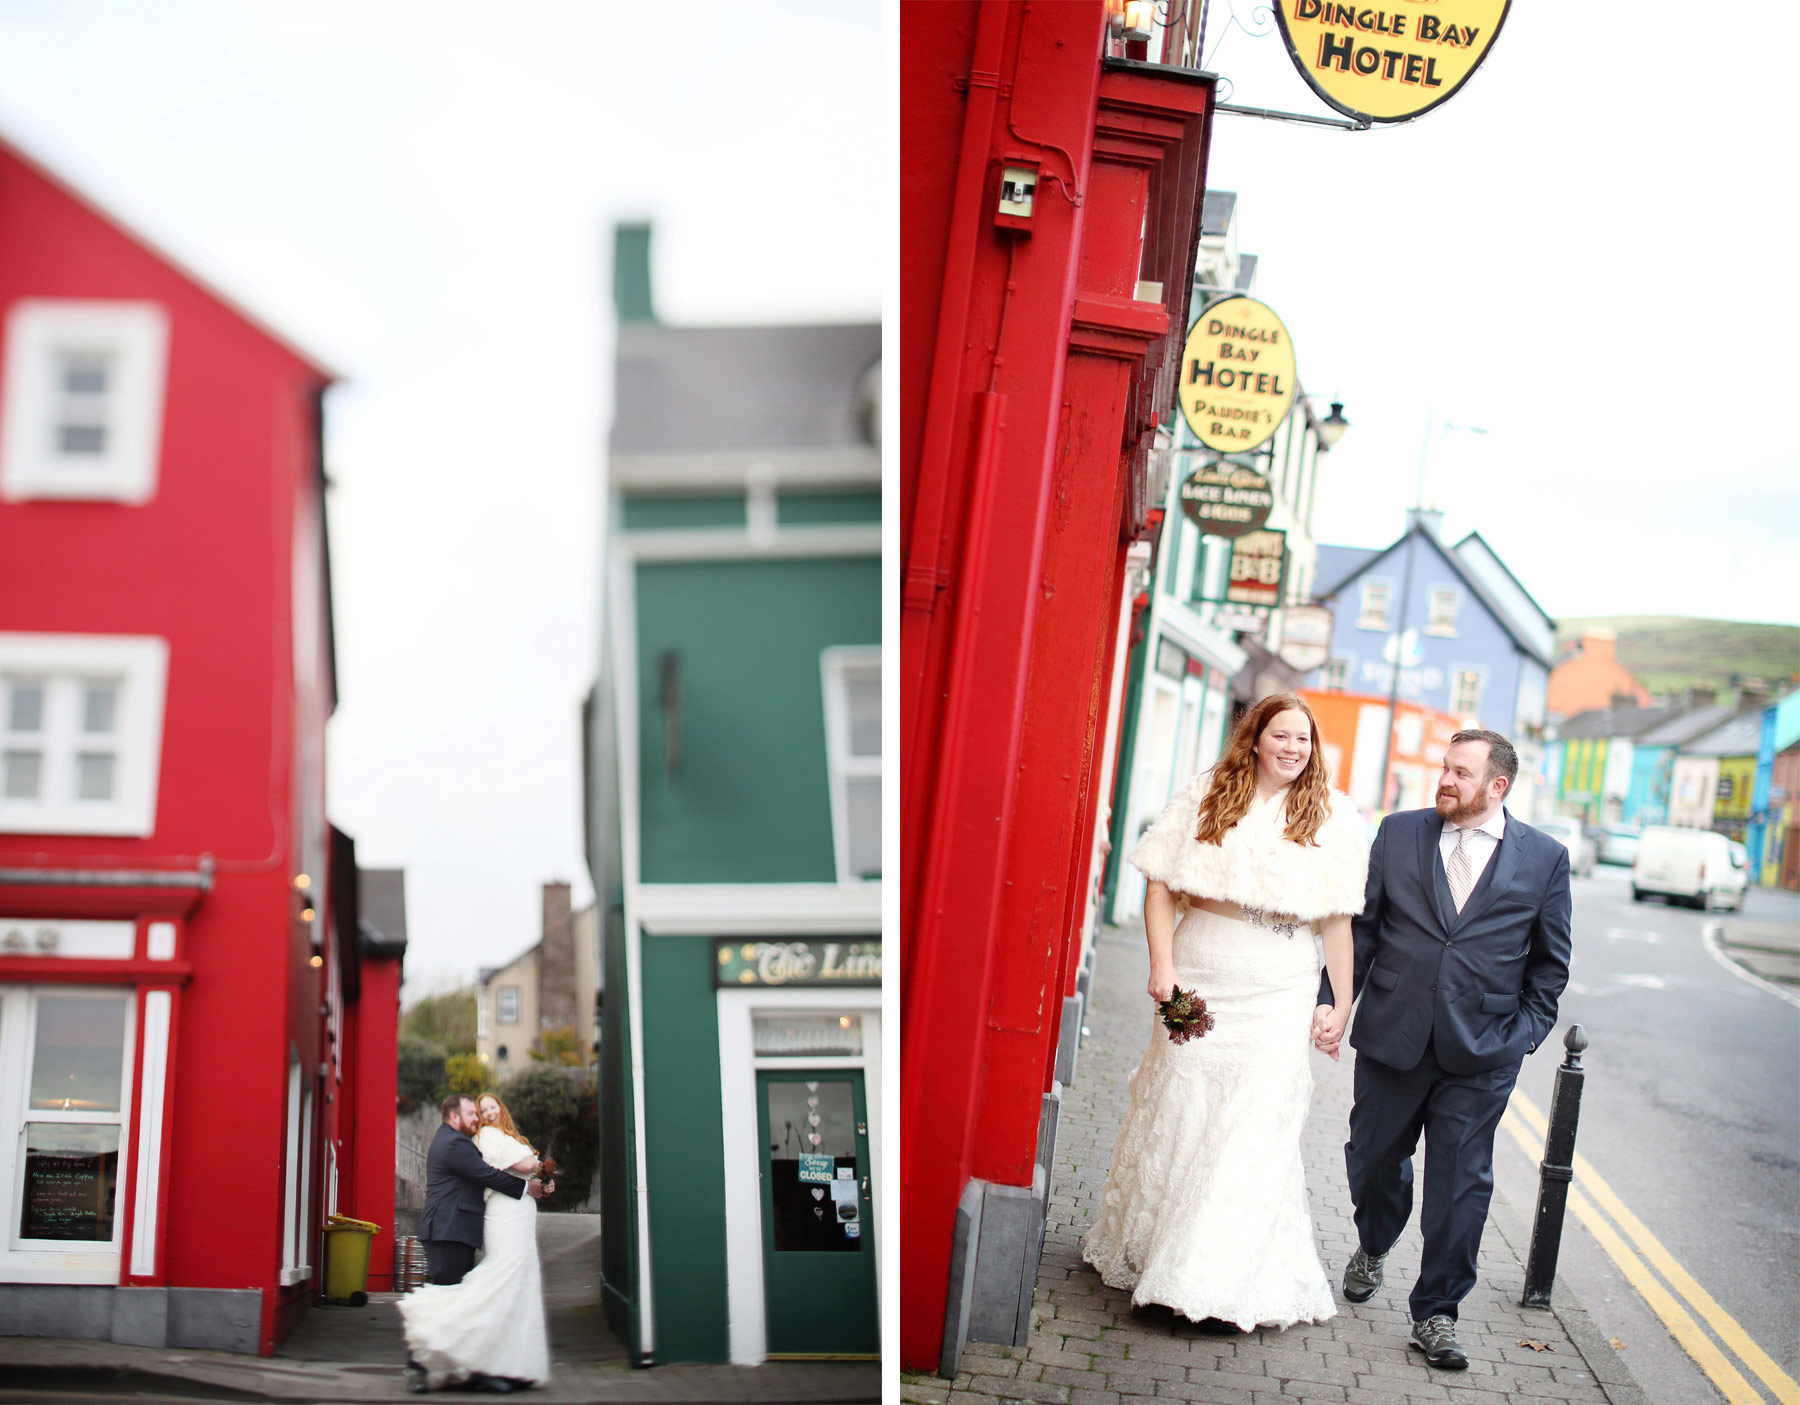 10-Kilarney-Ireland-Wedding-Photographer-by-Andrew-Vick-Photography-Fall-Autumn-Destination-Bride-Groom-Village-Embrace-Tilt-Shift-Becca-and-Donal.jpg